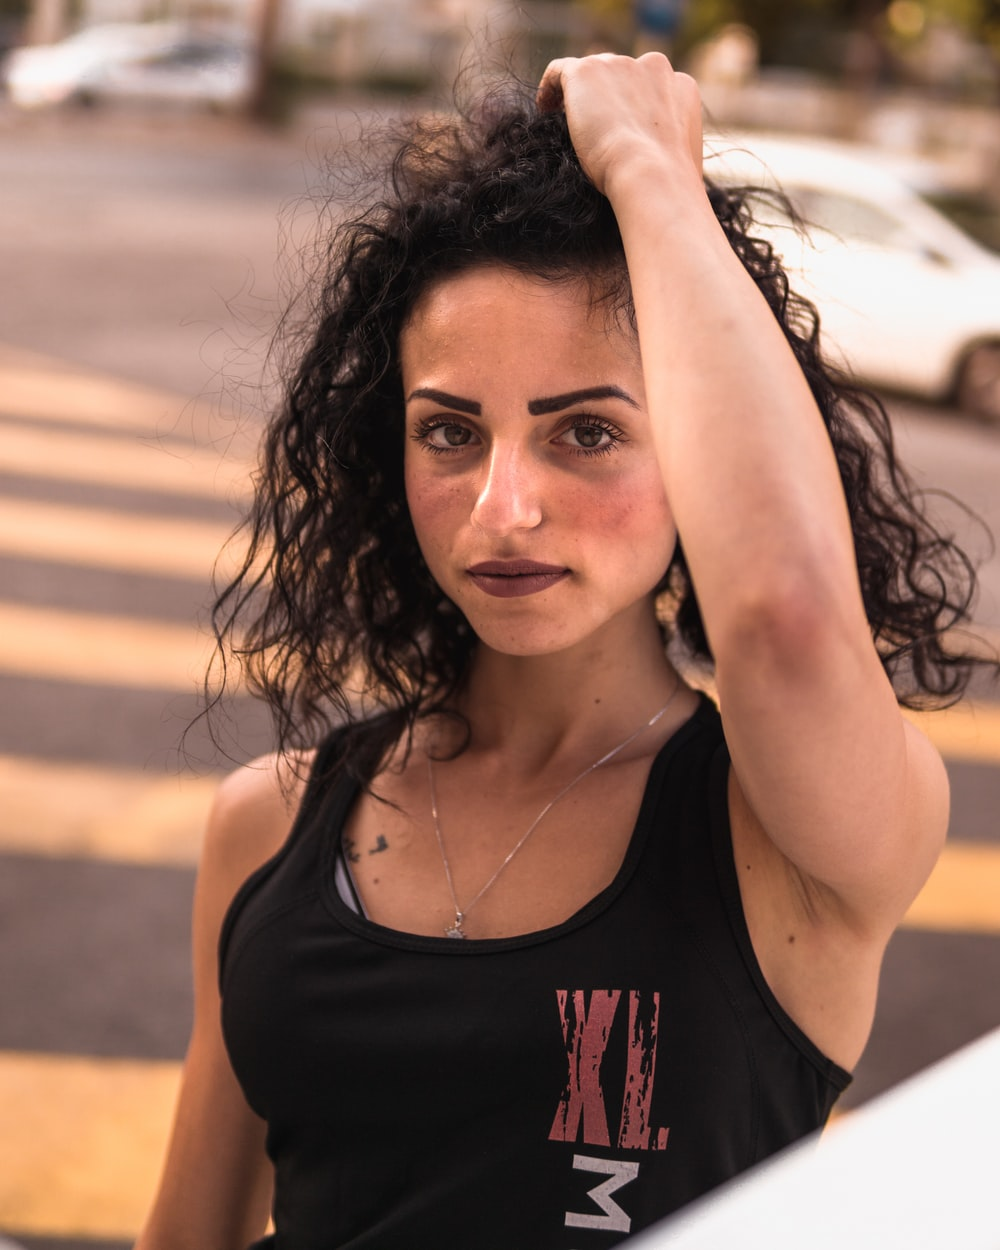 women wearing a black tank top close-up photography